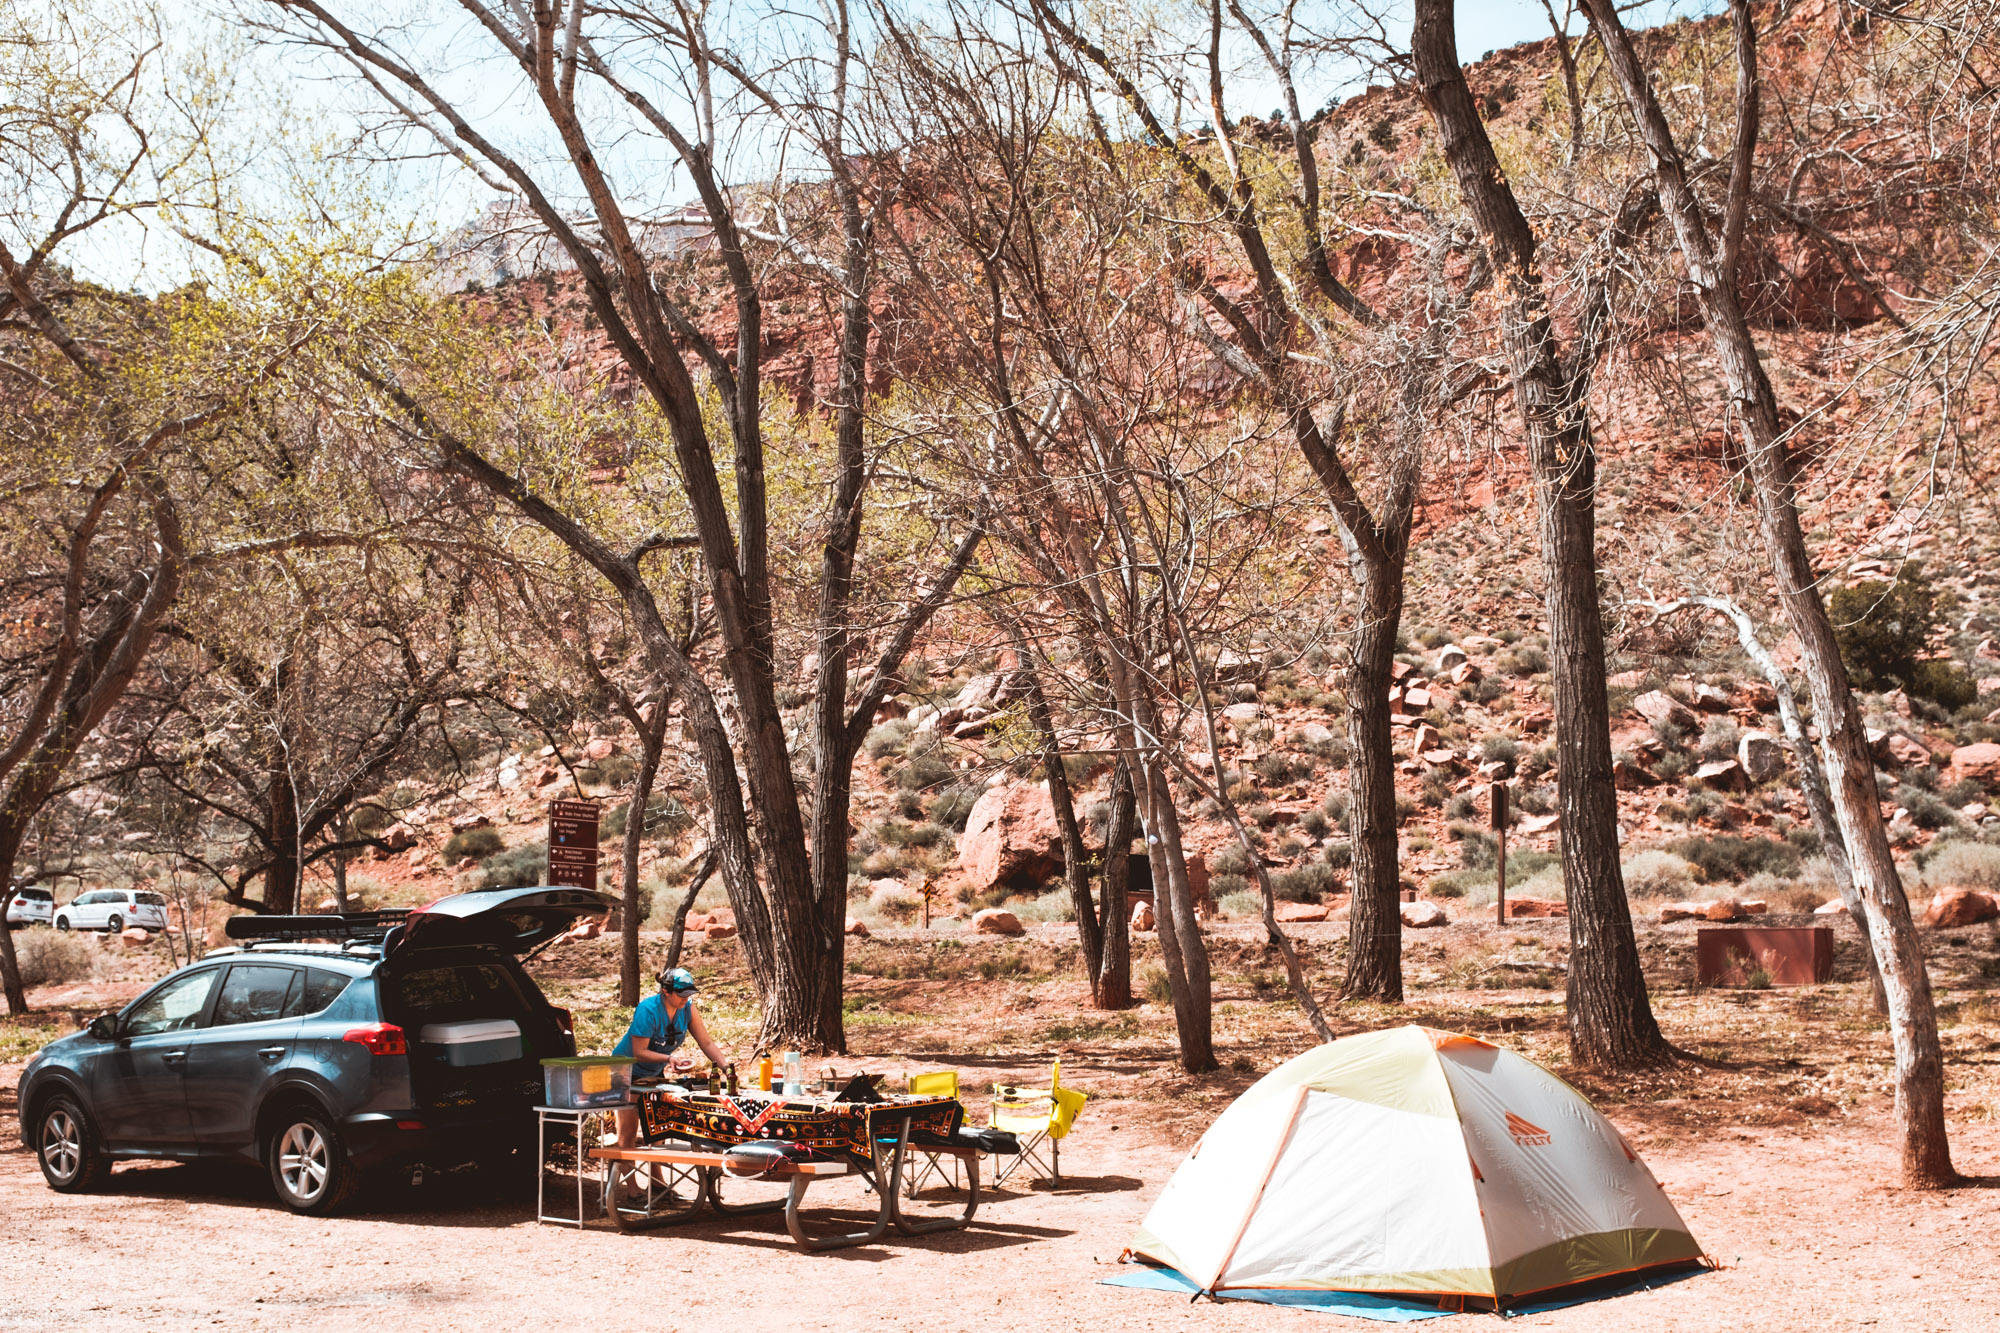 south-campground-zion-national-park-utah